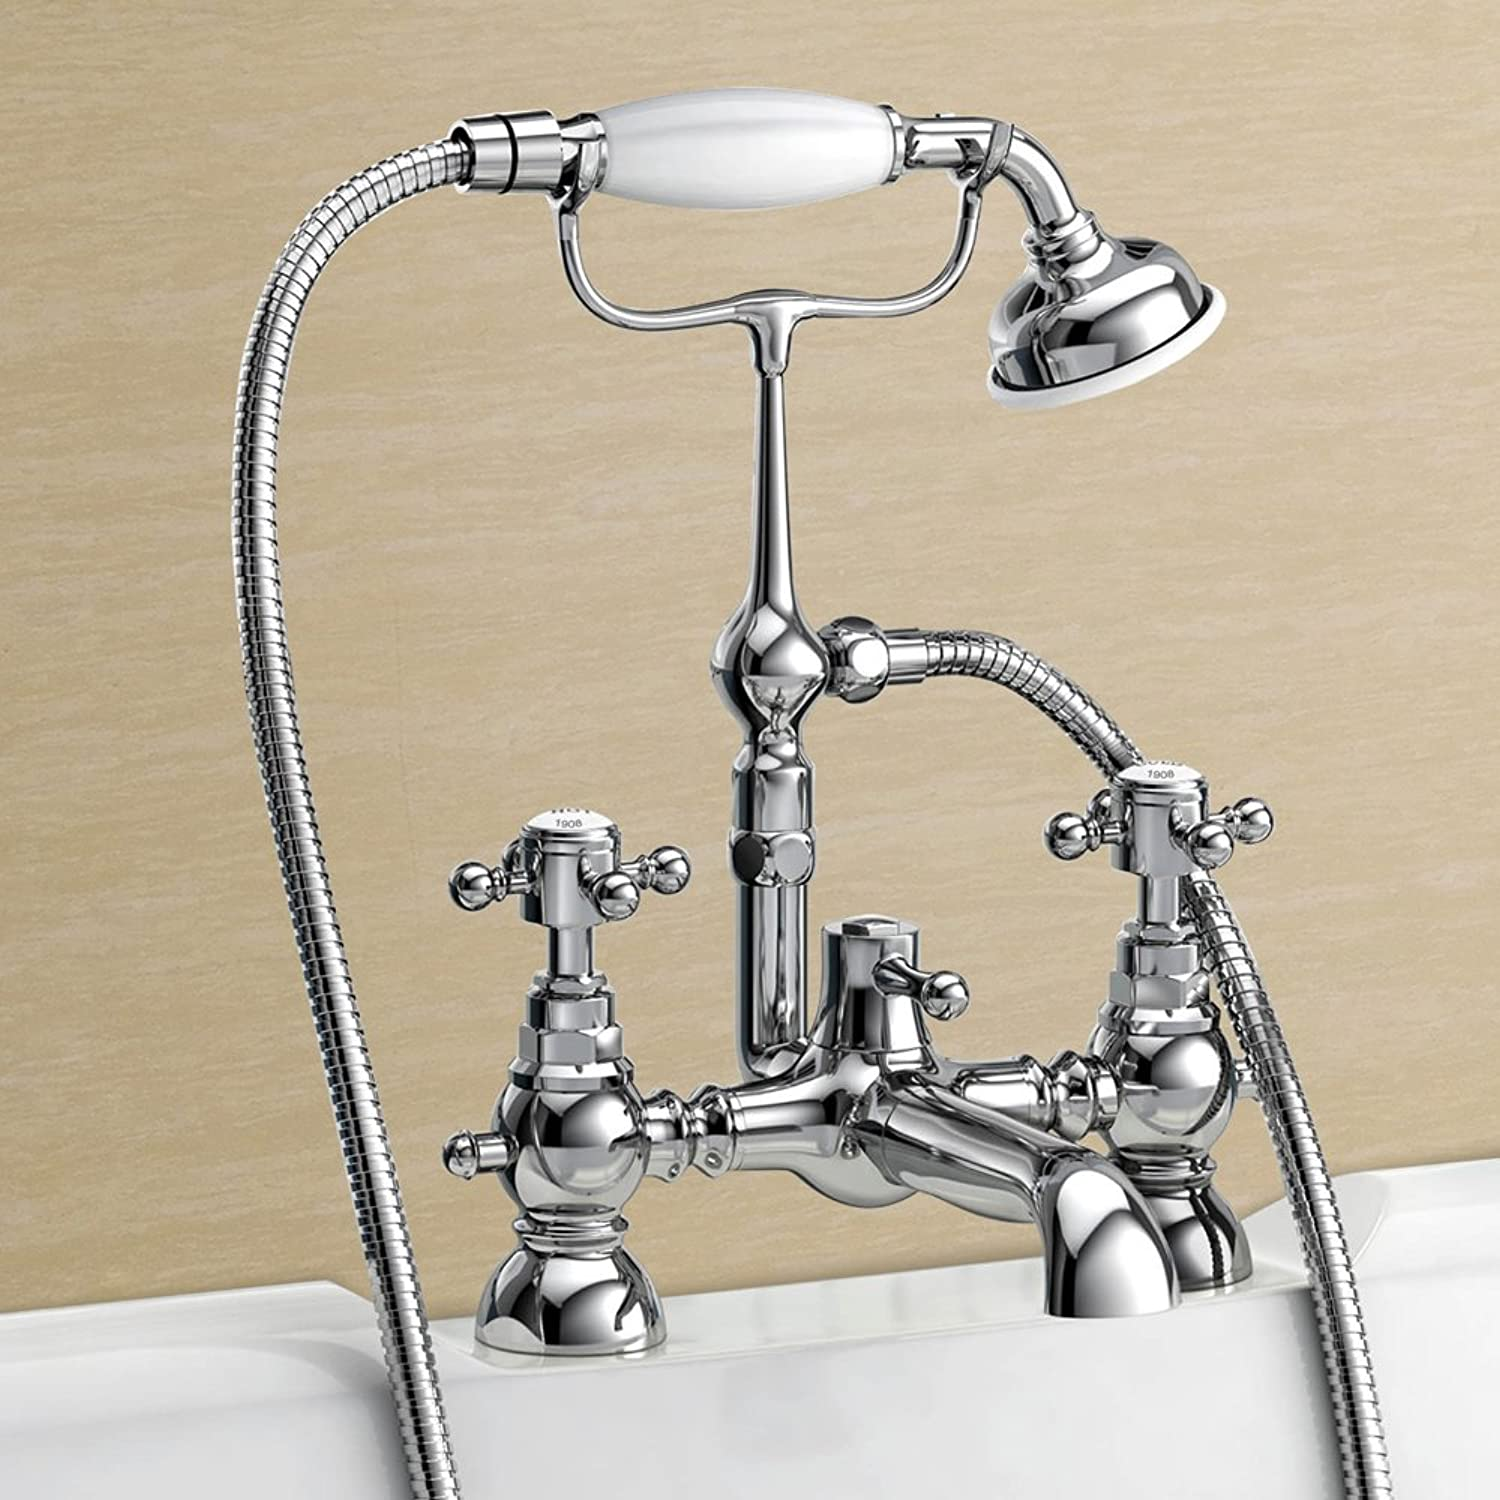 Home Standard   Clyde Traditional Hot and Cold Bath Shower Mixer Tap Chrome Ball Cross Head   Shower Hand Held Head